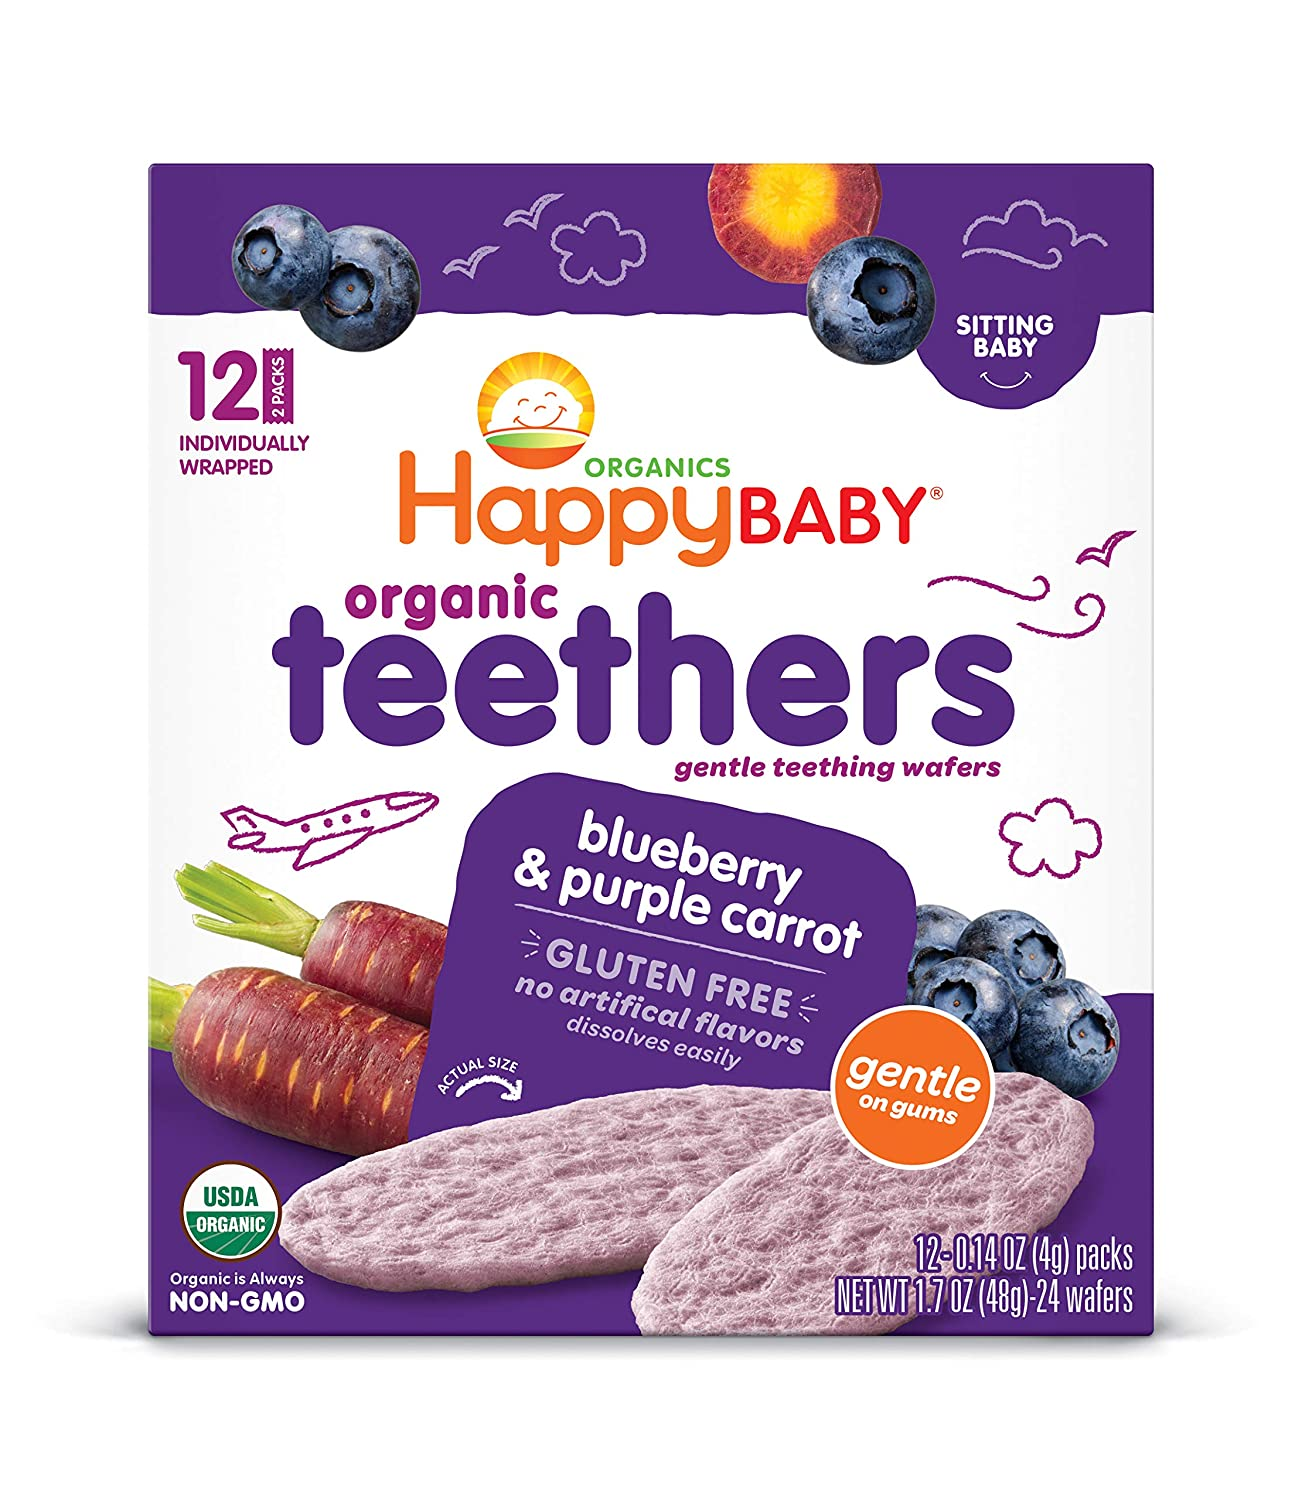 Happy Baby Gentle Teethers Organic Teething Wafers Blueberry Purple Carrot, 0.14 Ounce Packets (Box of 12) Soothing Rice Cookies for Teething Babies Dissolves Easily, Gluten Free No Artificial Flavor